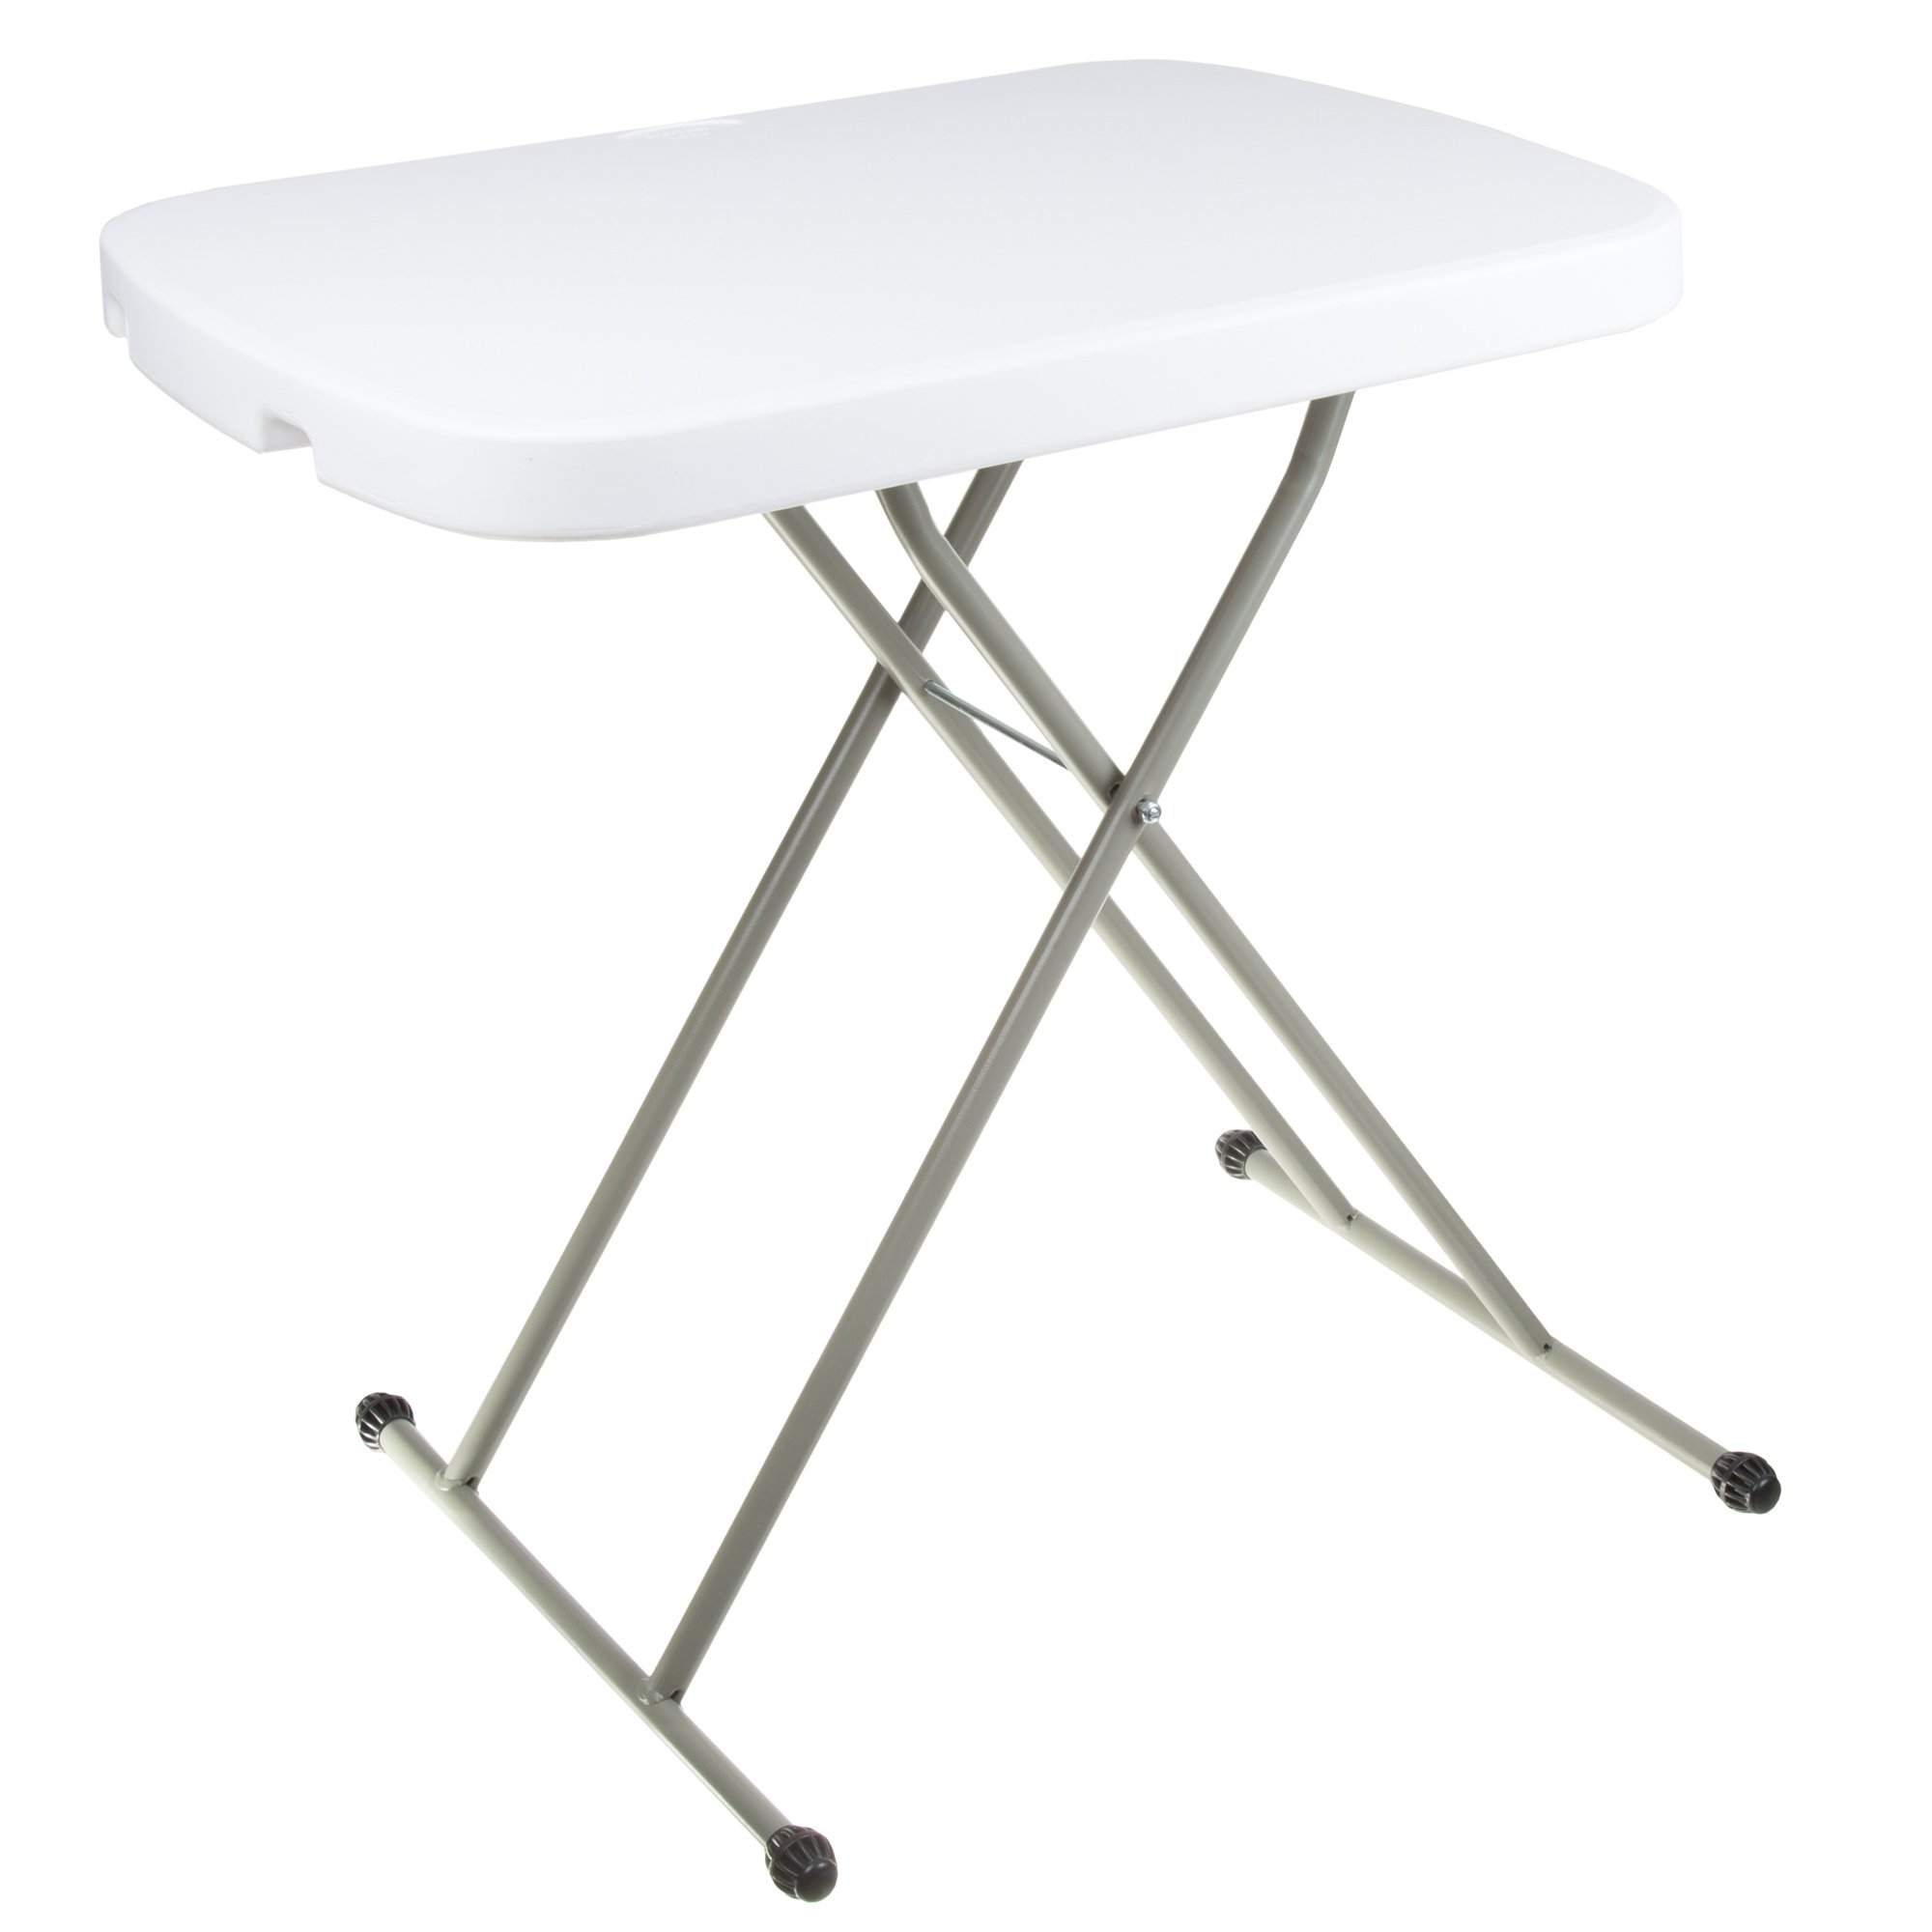 Folding Table, Foldable Table and TV Tray by Everyday Home, 26 x 18 x 27 (Great for Laptops)